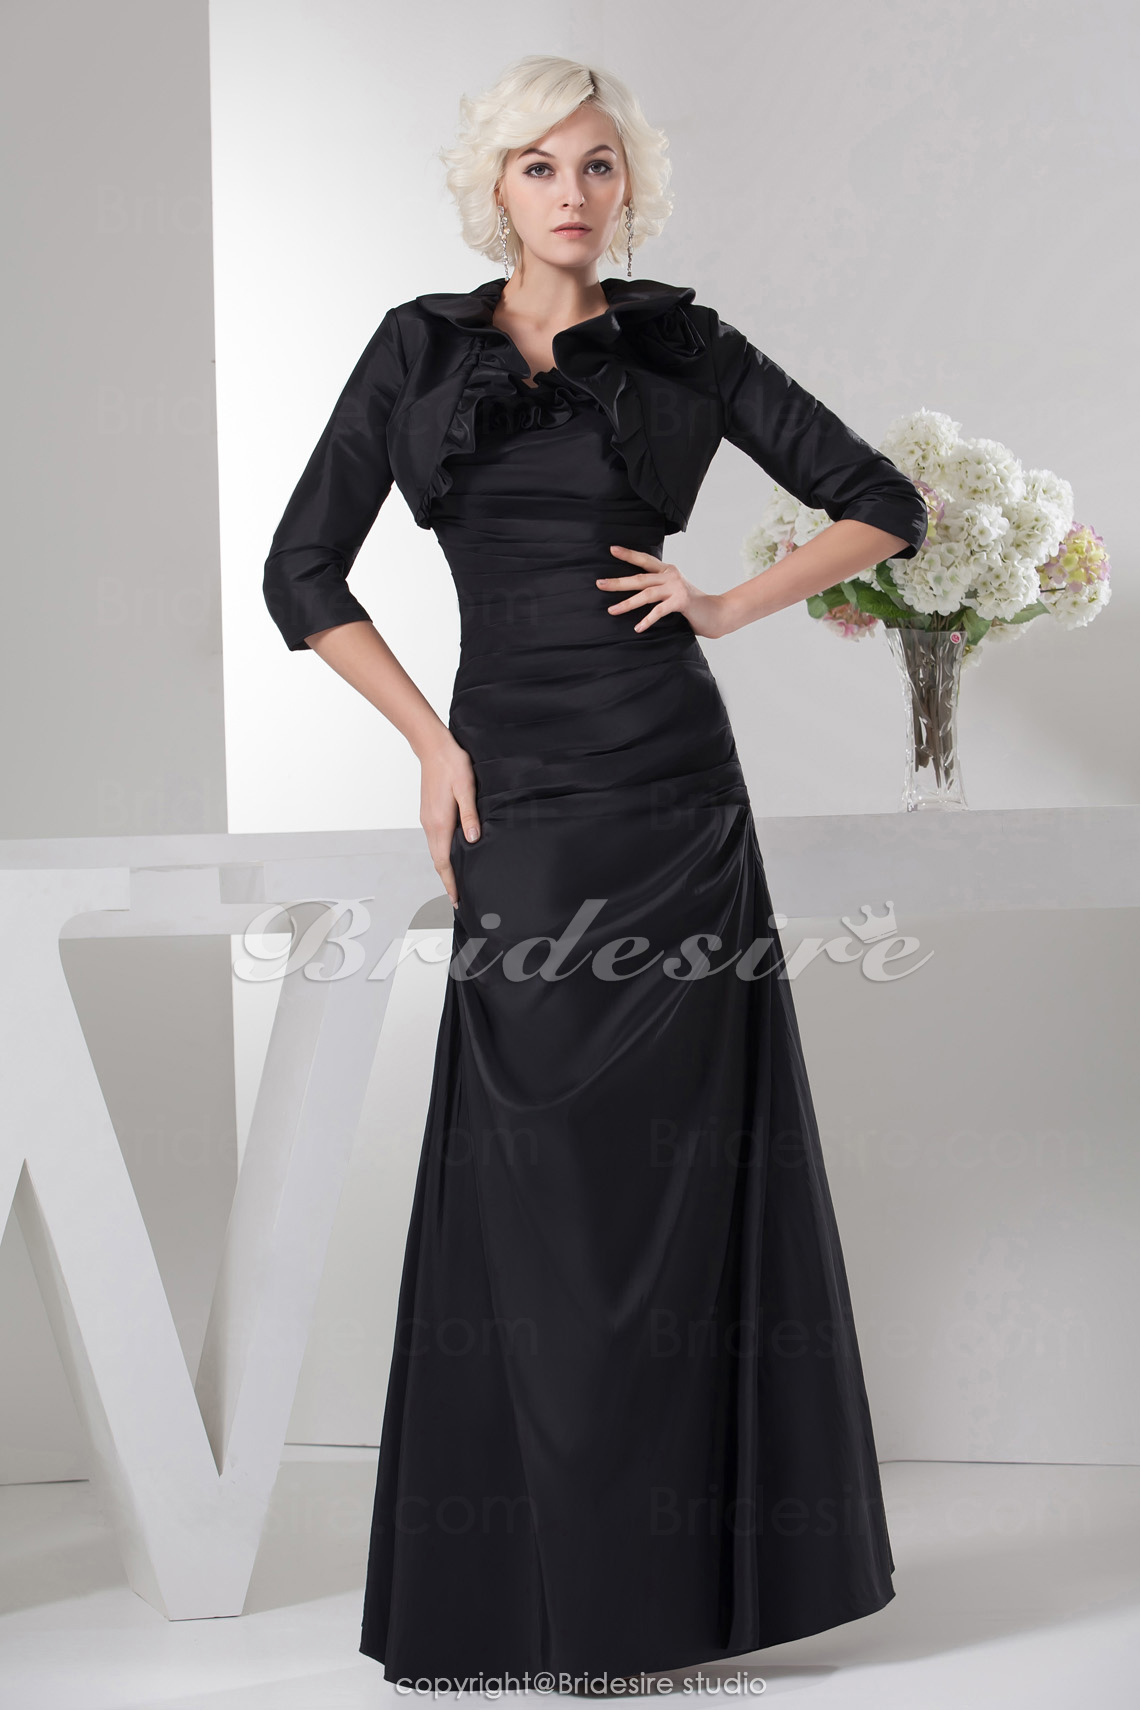 A-line Strapless Floor-length 3/4 Length Sleeve Satin Dress